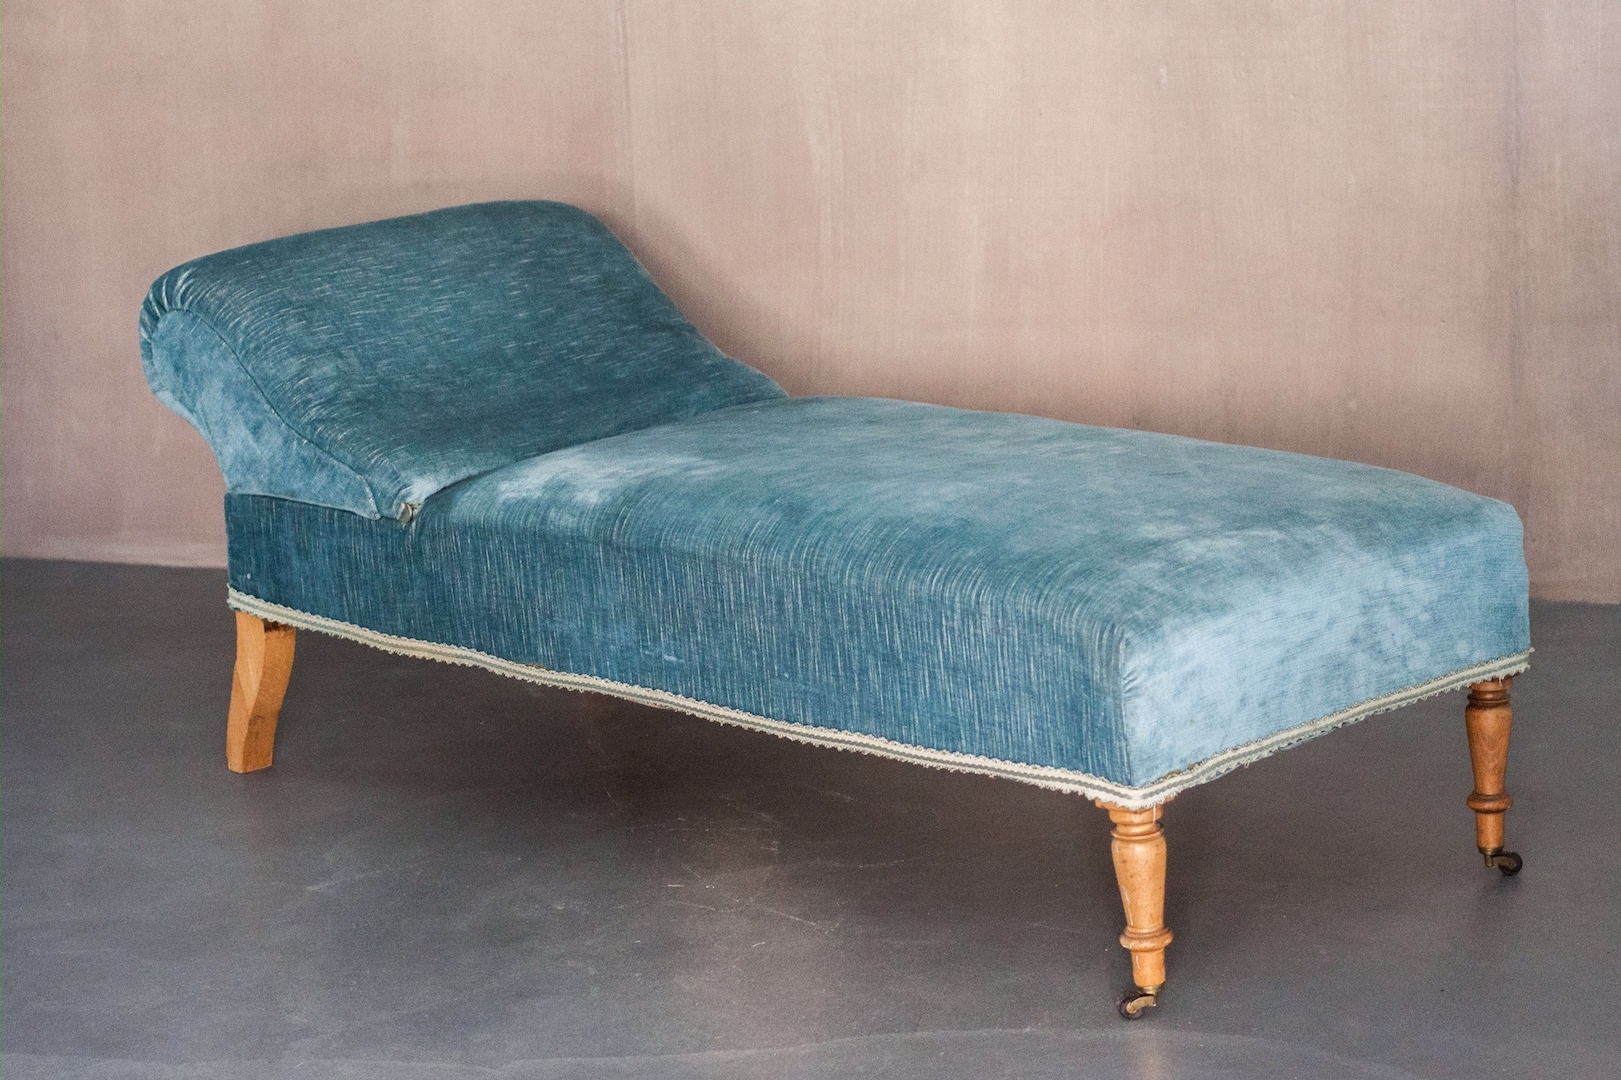 Vintage Chaise Lounge With Sky Blue Velvet Upholstery For Sale At Throughout Well Known Blue Chaises (Gallery 4 of 15)